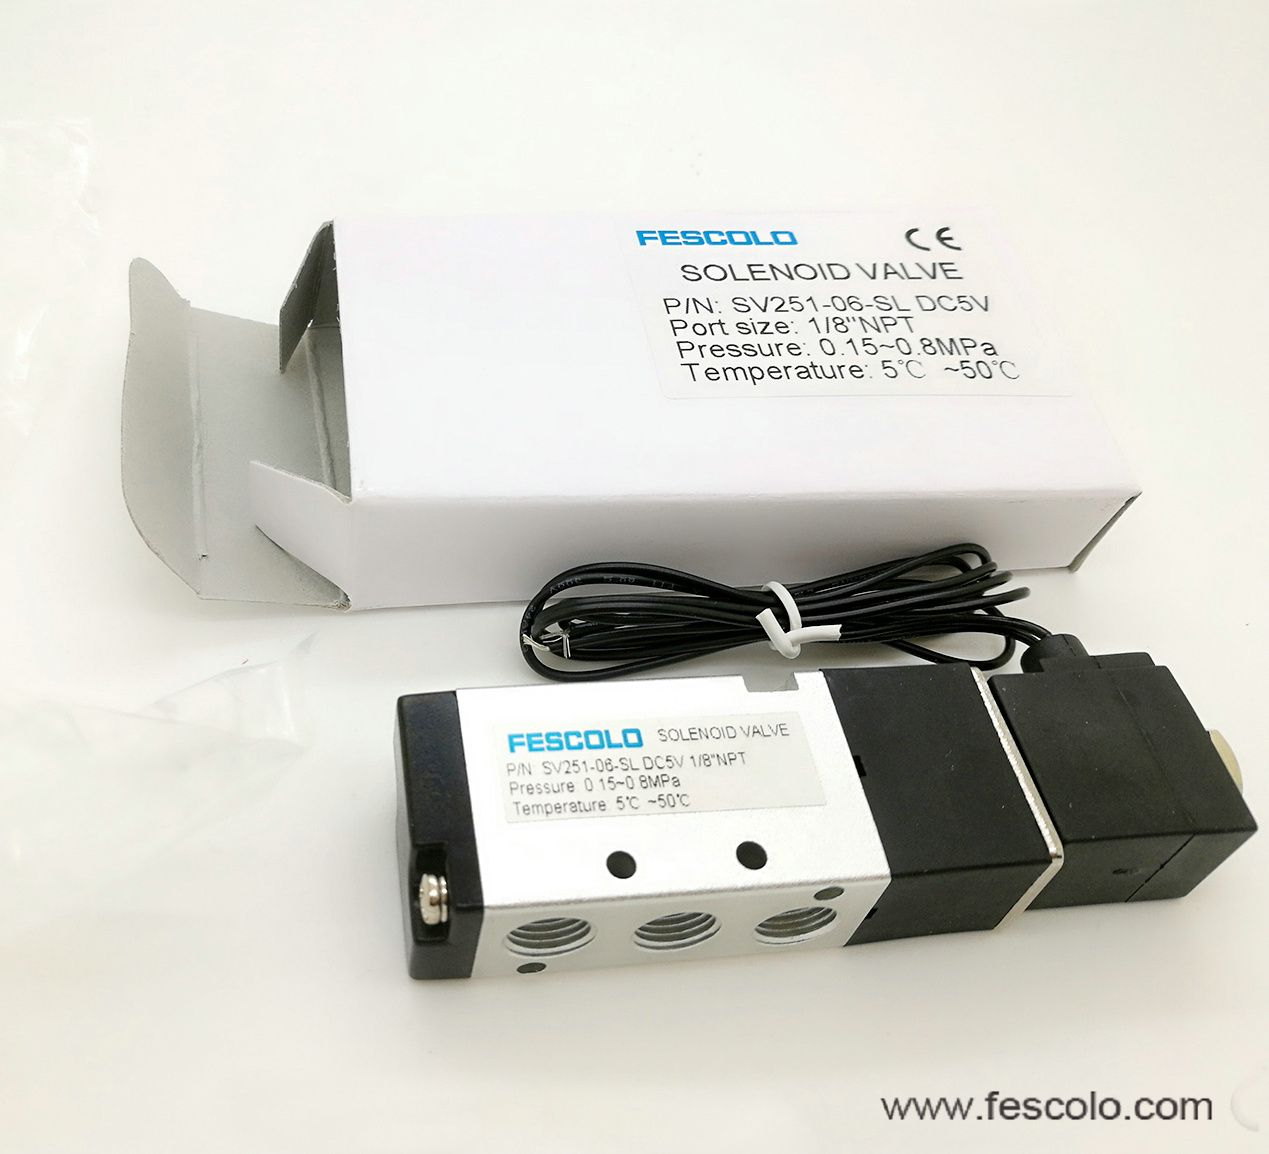 SolenoidValve The protection grade for this series